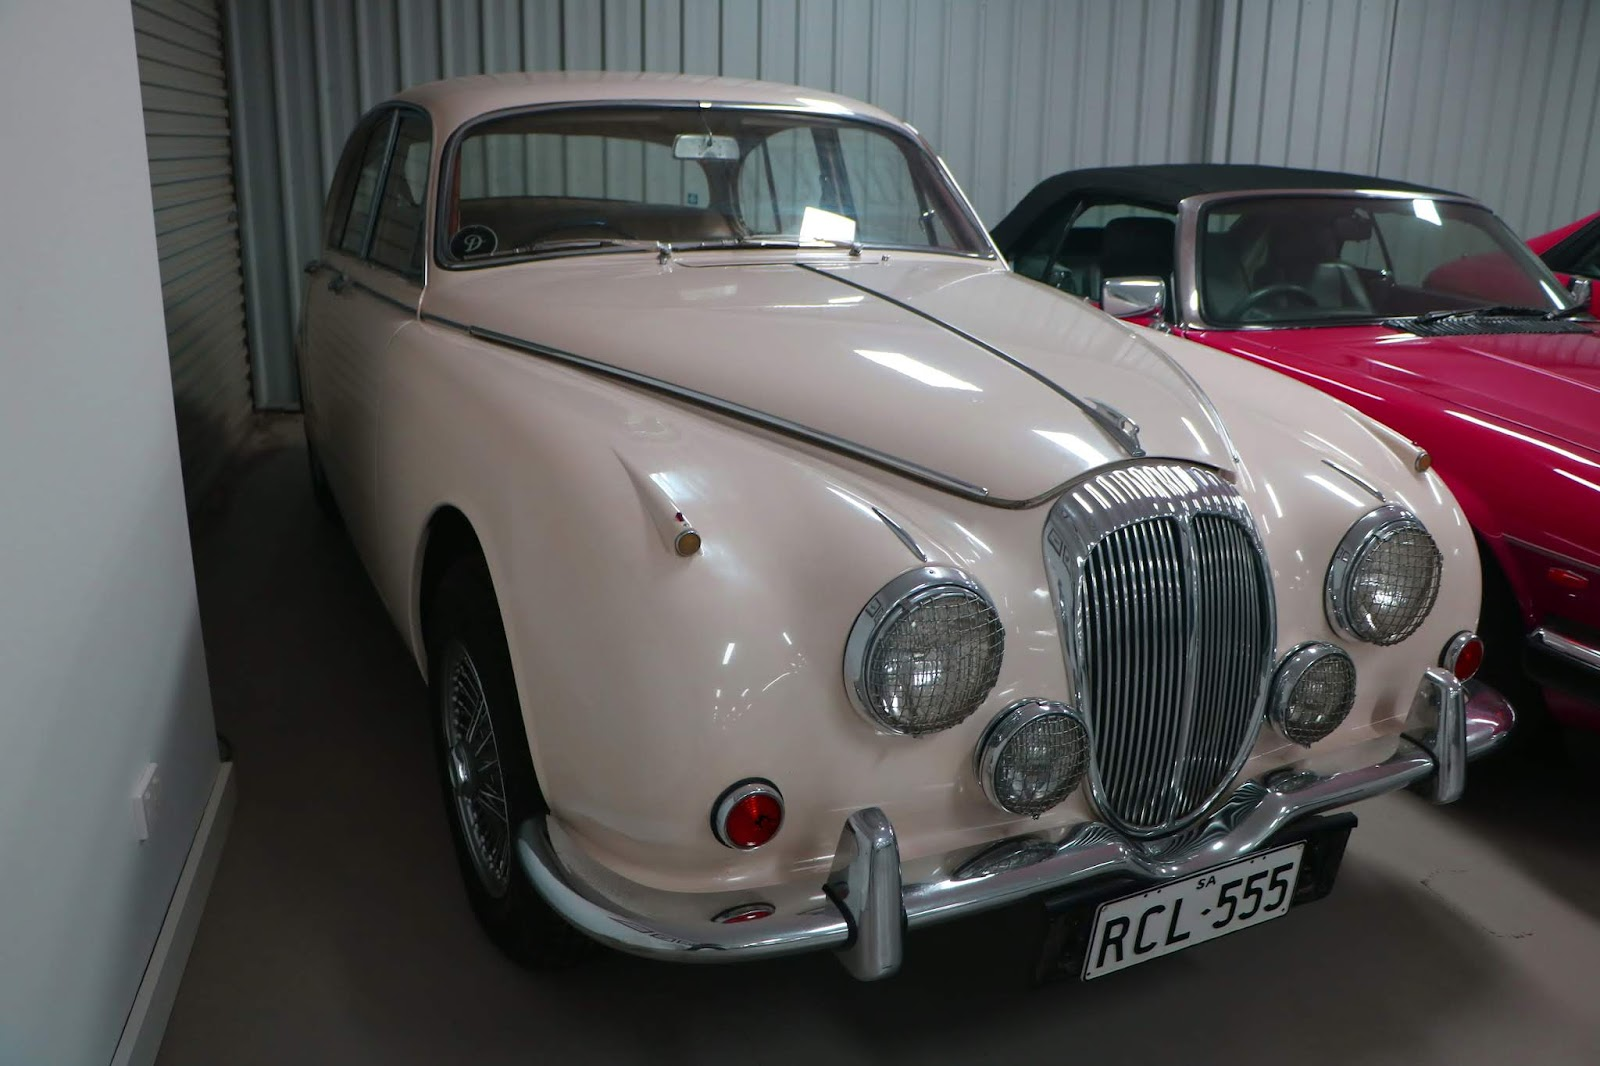 Carl_Lindner_Collection - 1965 Daimler 250 V8 Saloon 03.JPG